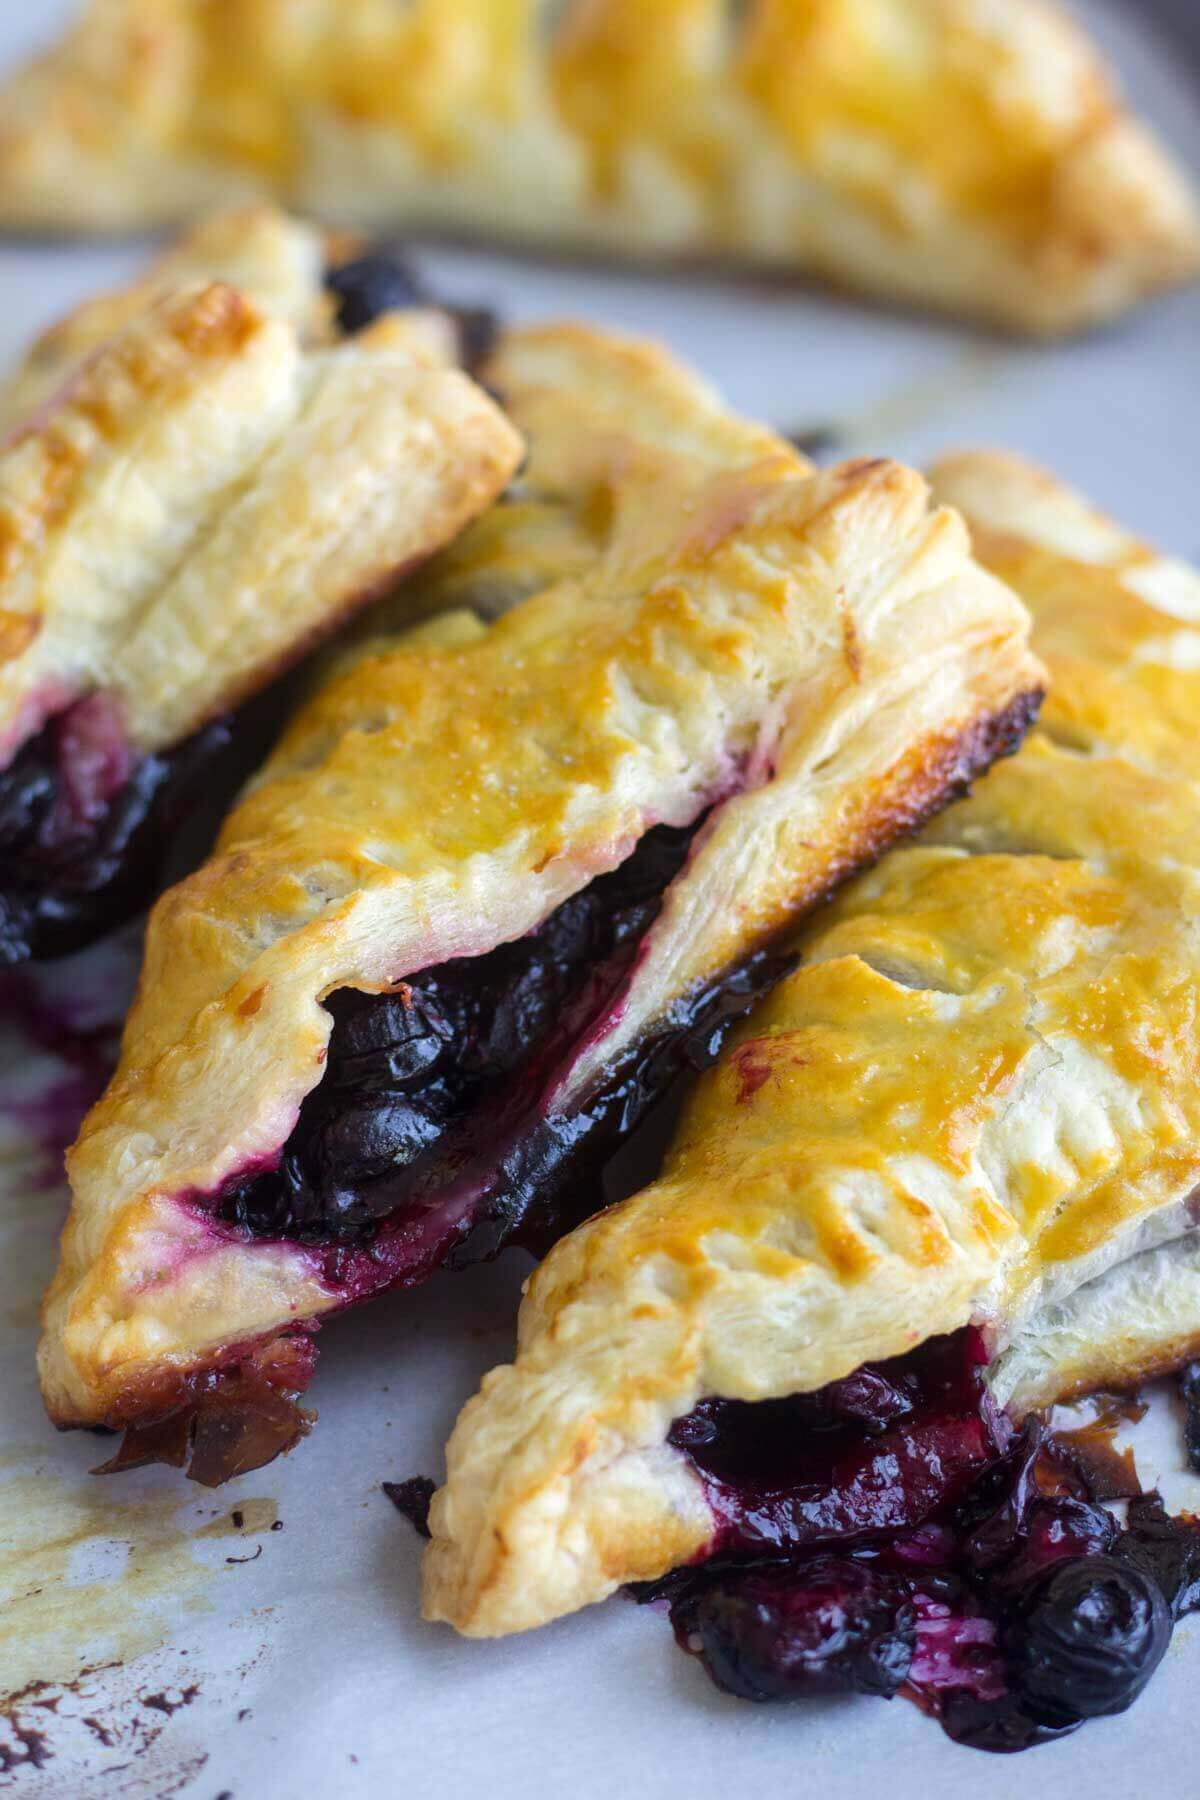 three blueberry turnovers stacked next to each other